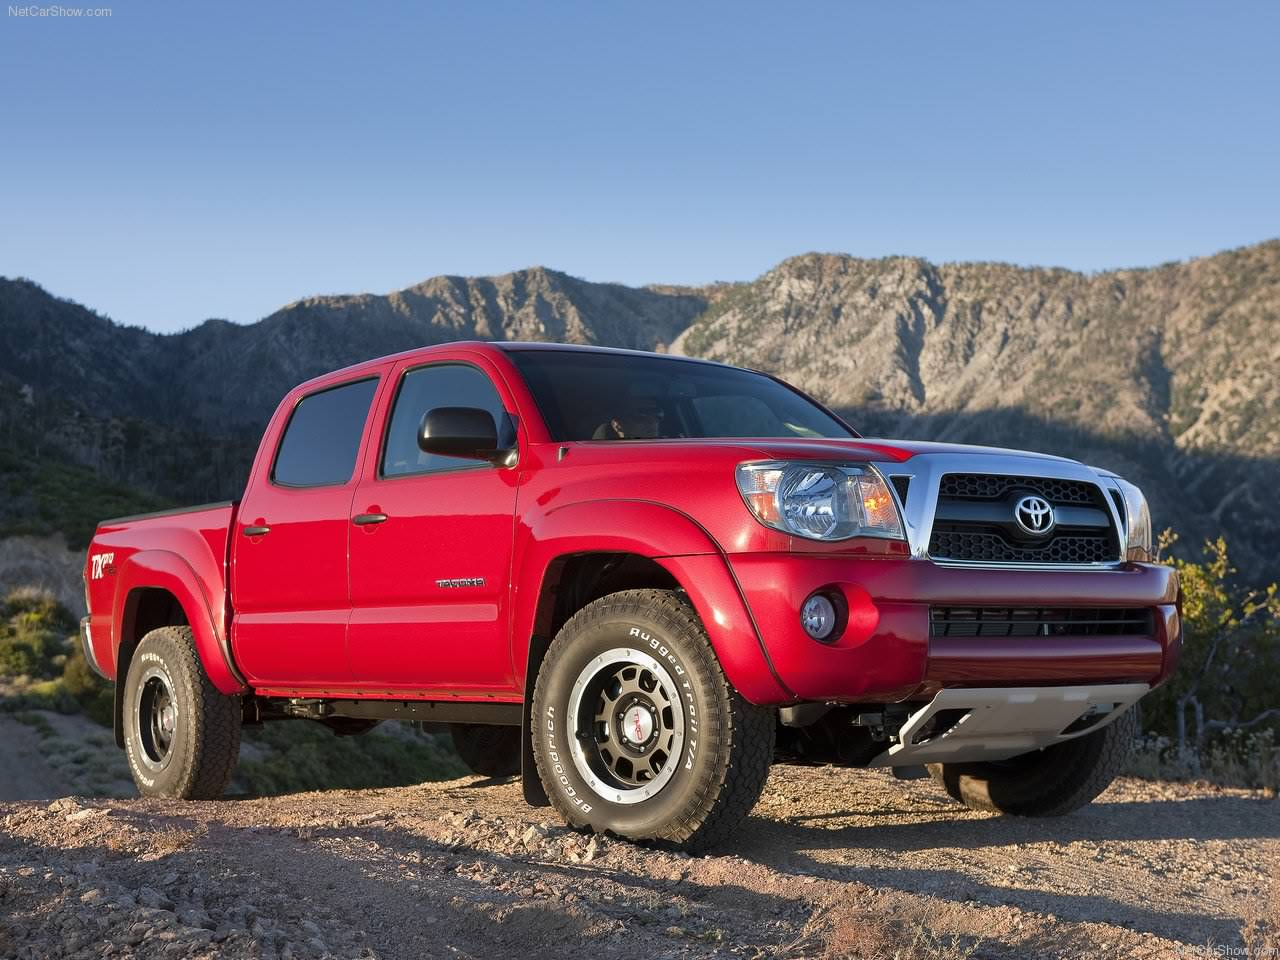 Toyota Tacoma Wallpaper 5840 Hd Wallpapers in Cars   Imagescicom 1280x960